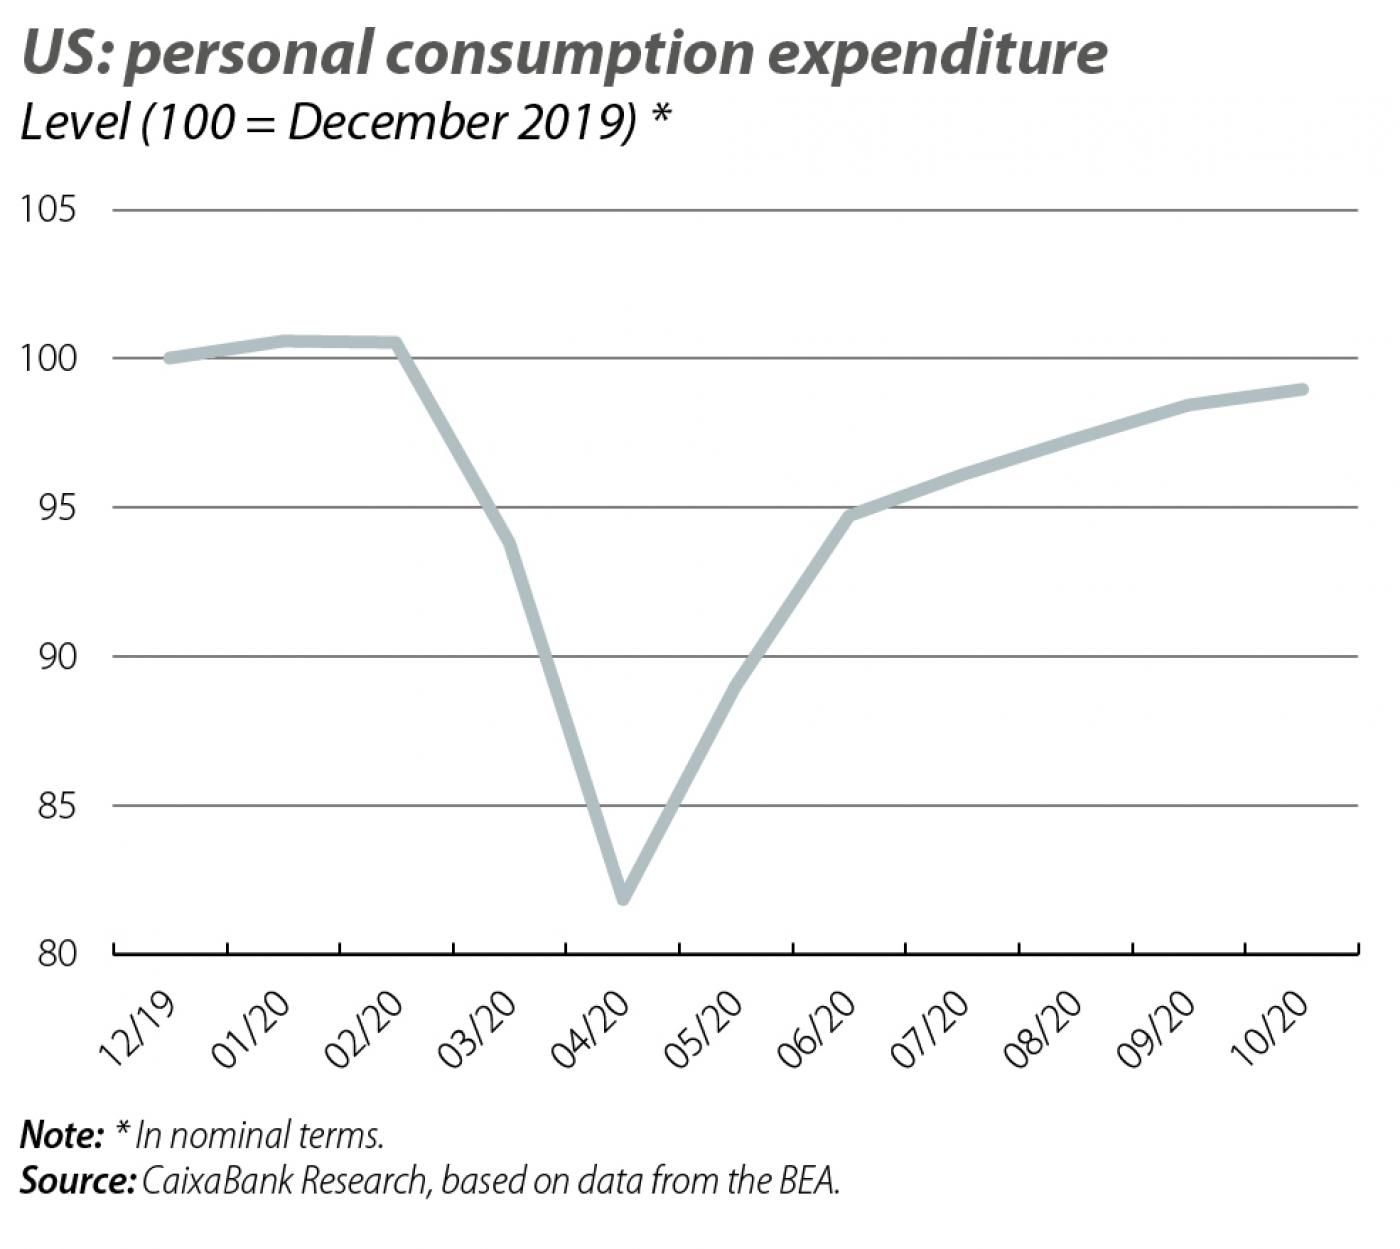 US: personal consumption expenditure